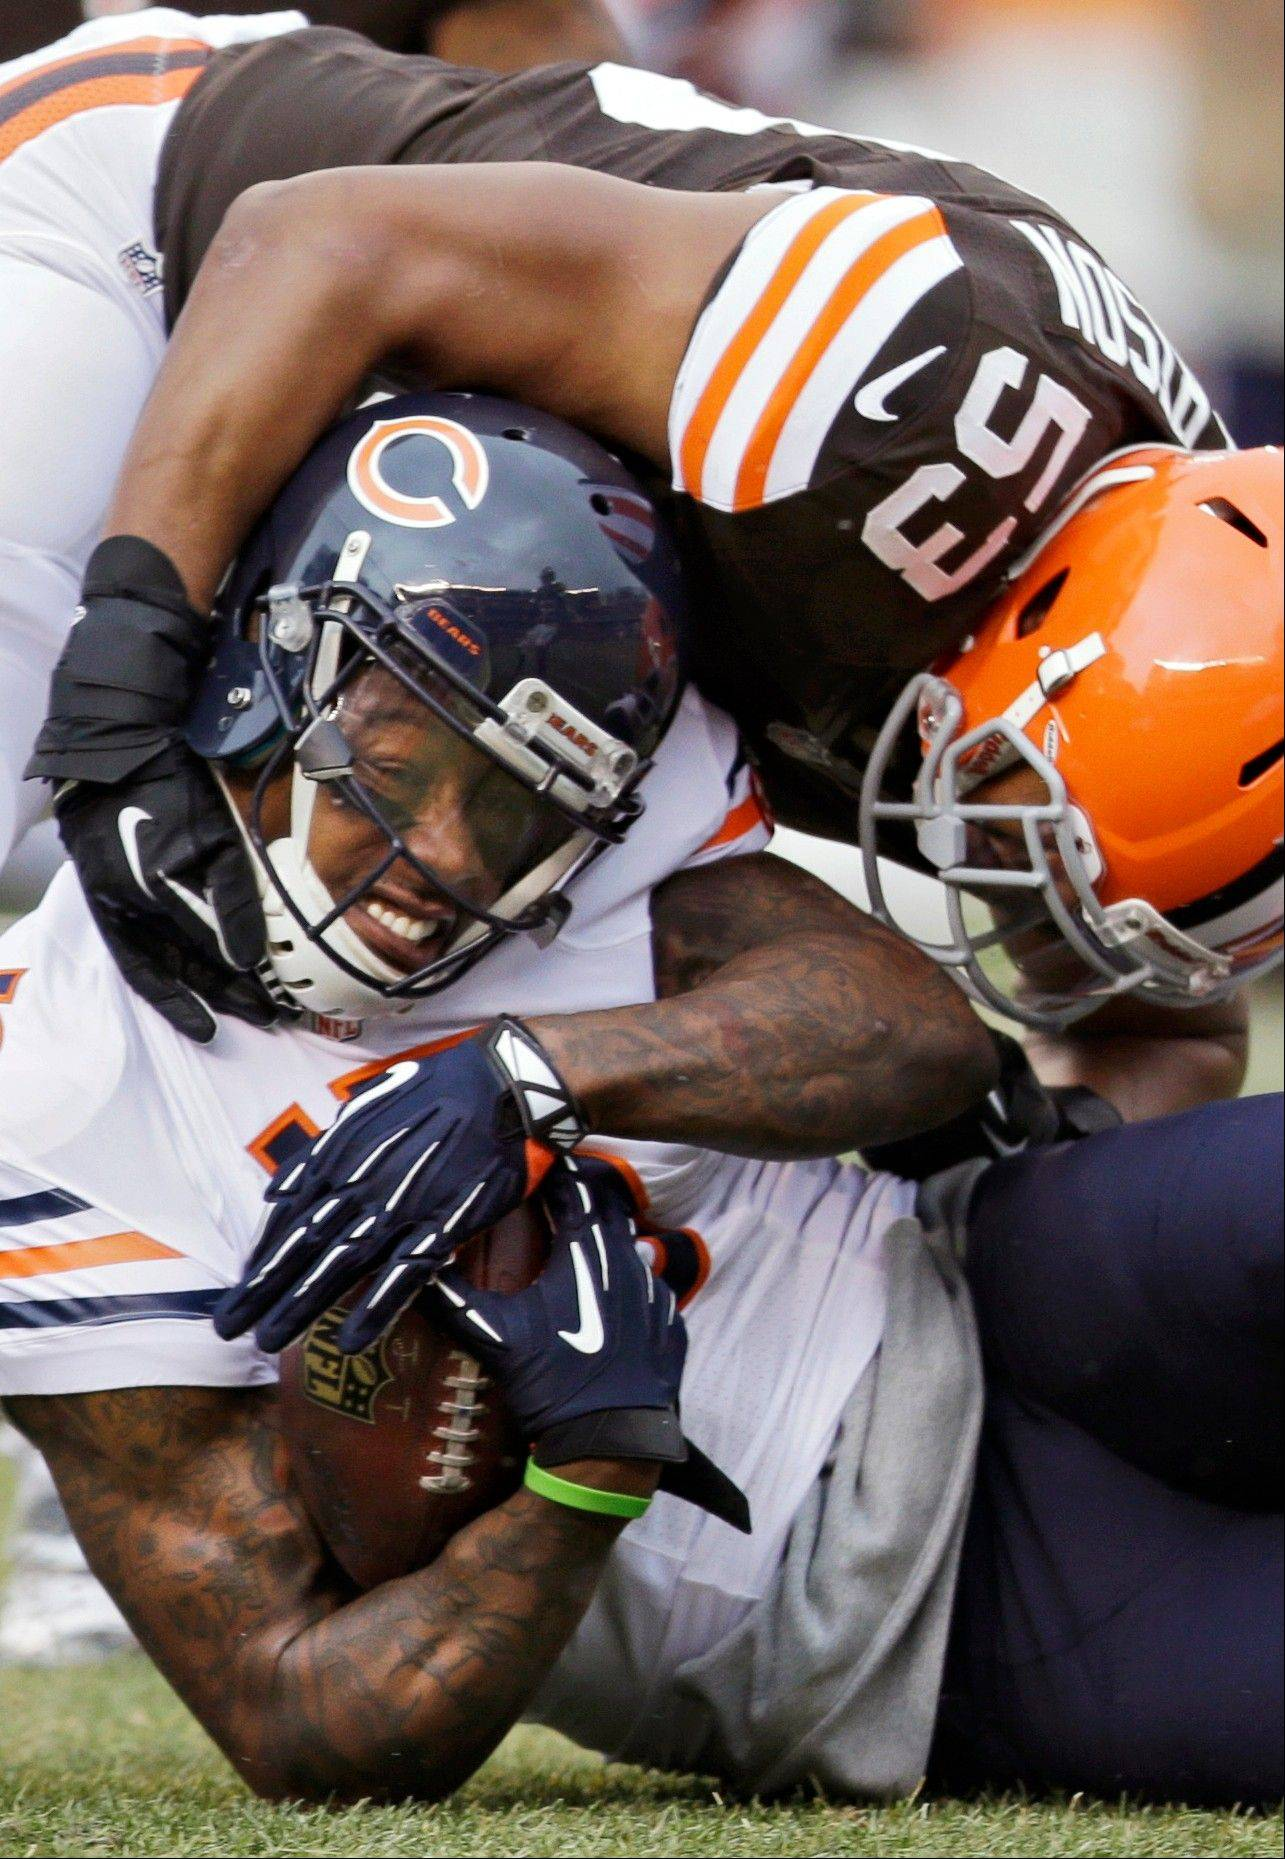 Chicago Bears wide receiver Brandon Marshall (15) is tackled by Cleveland Browns inside linebacker Craig Robertson (53) after a catch in the first quarter.